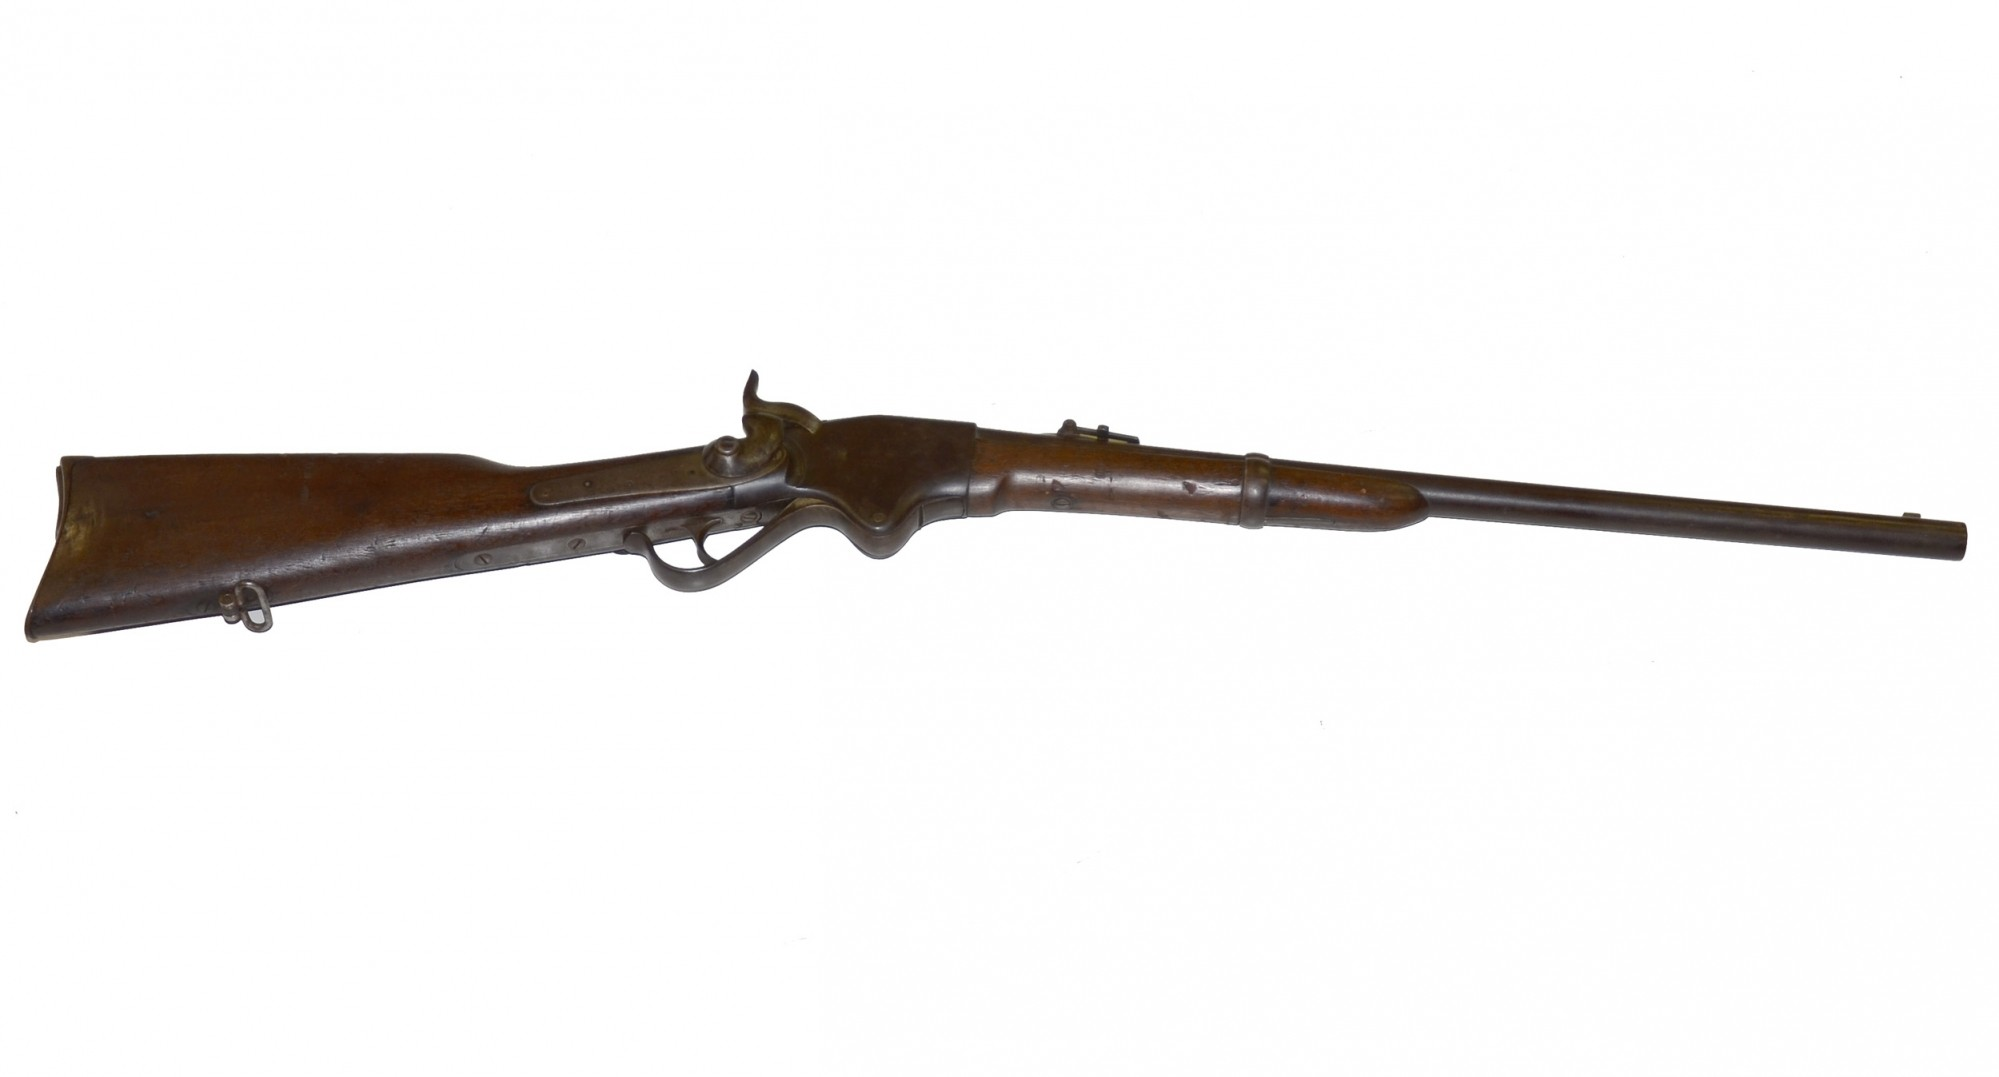 M1860 SPENCER CIVIL WAR CARBINE ALTERED POST-WAR BY THE SPRINGFIELD ARMORY